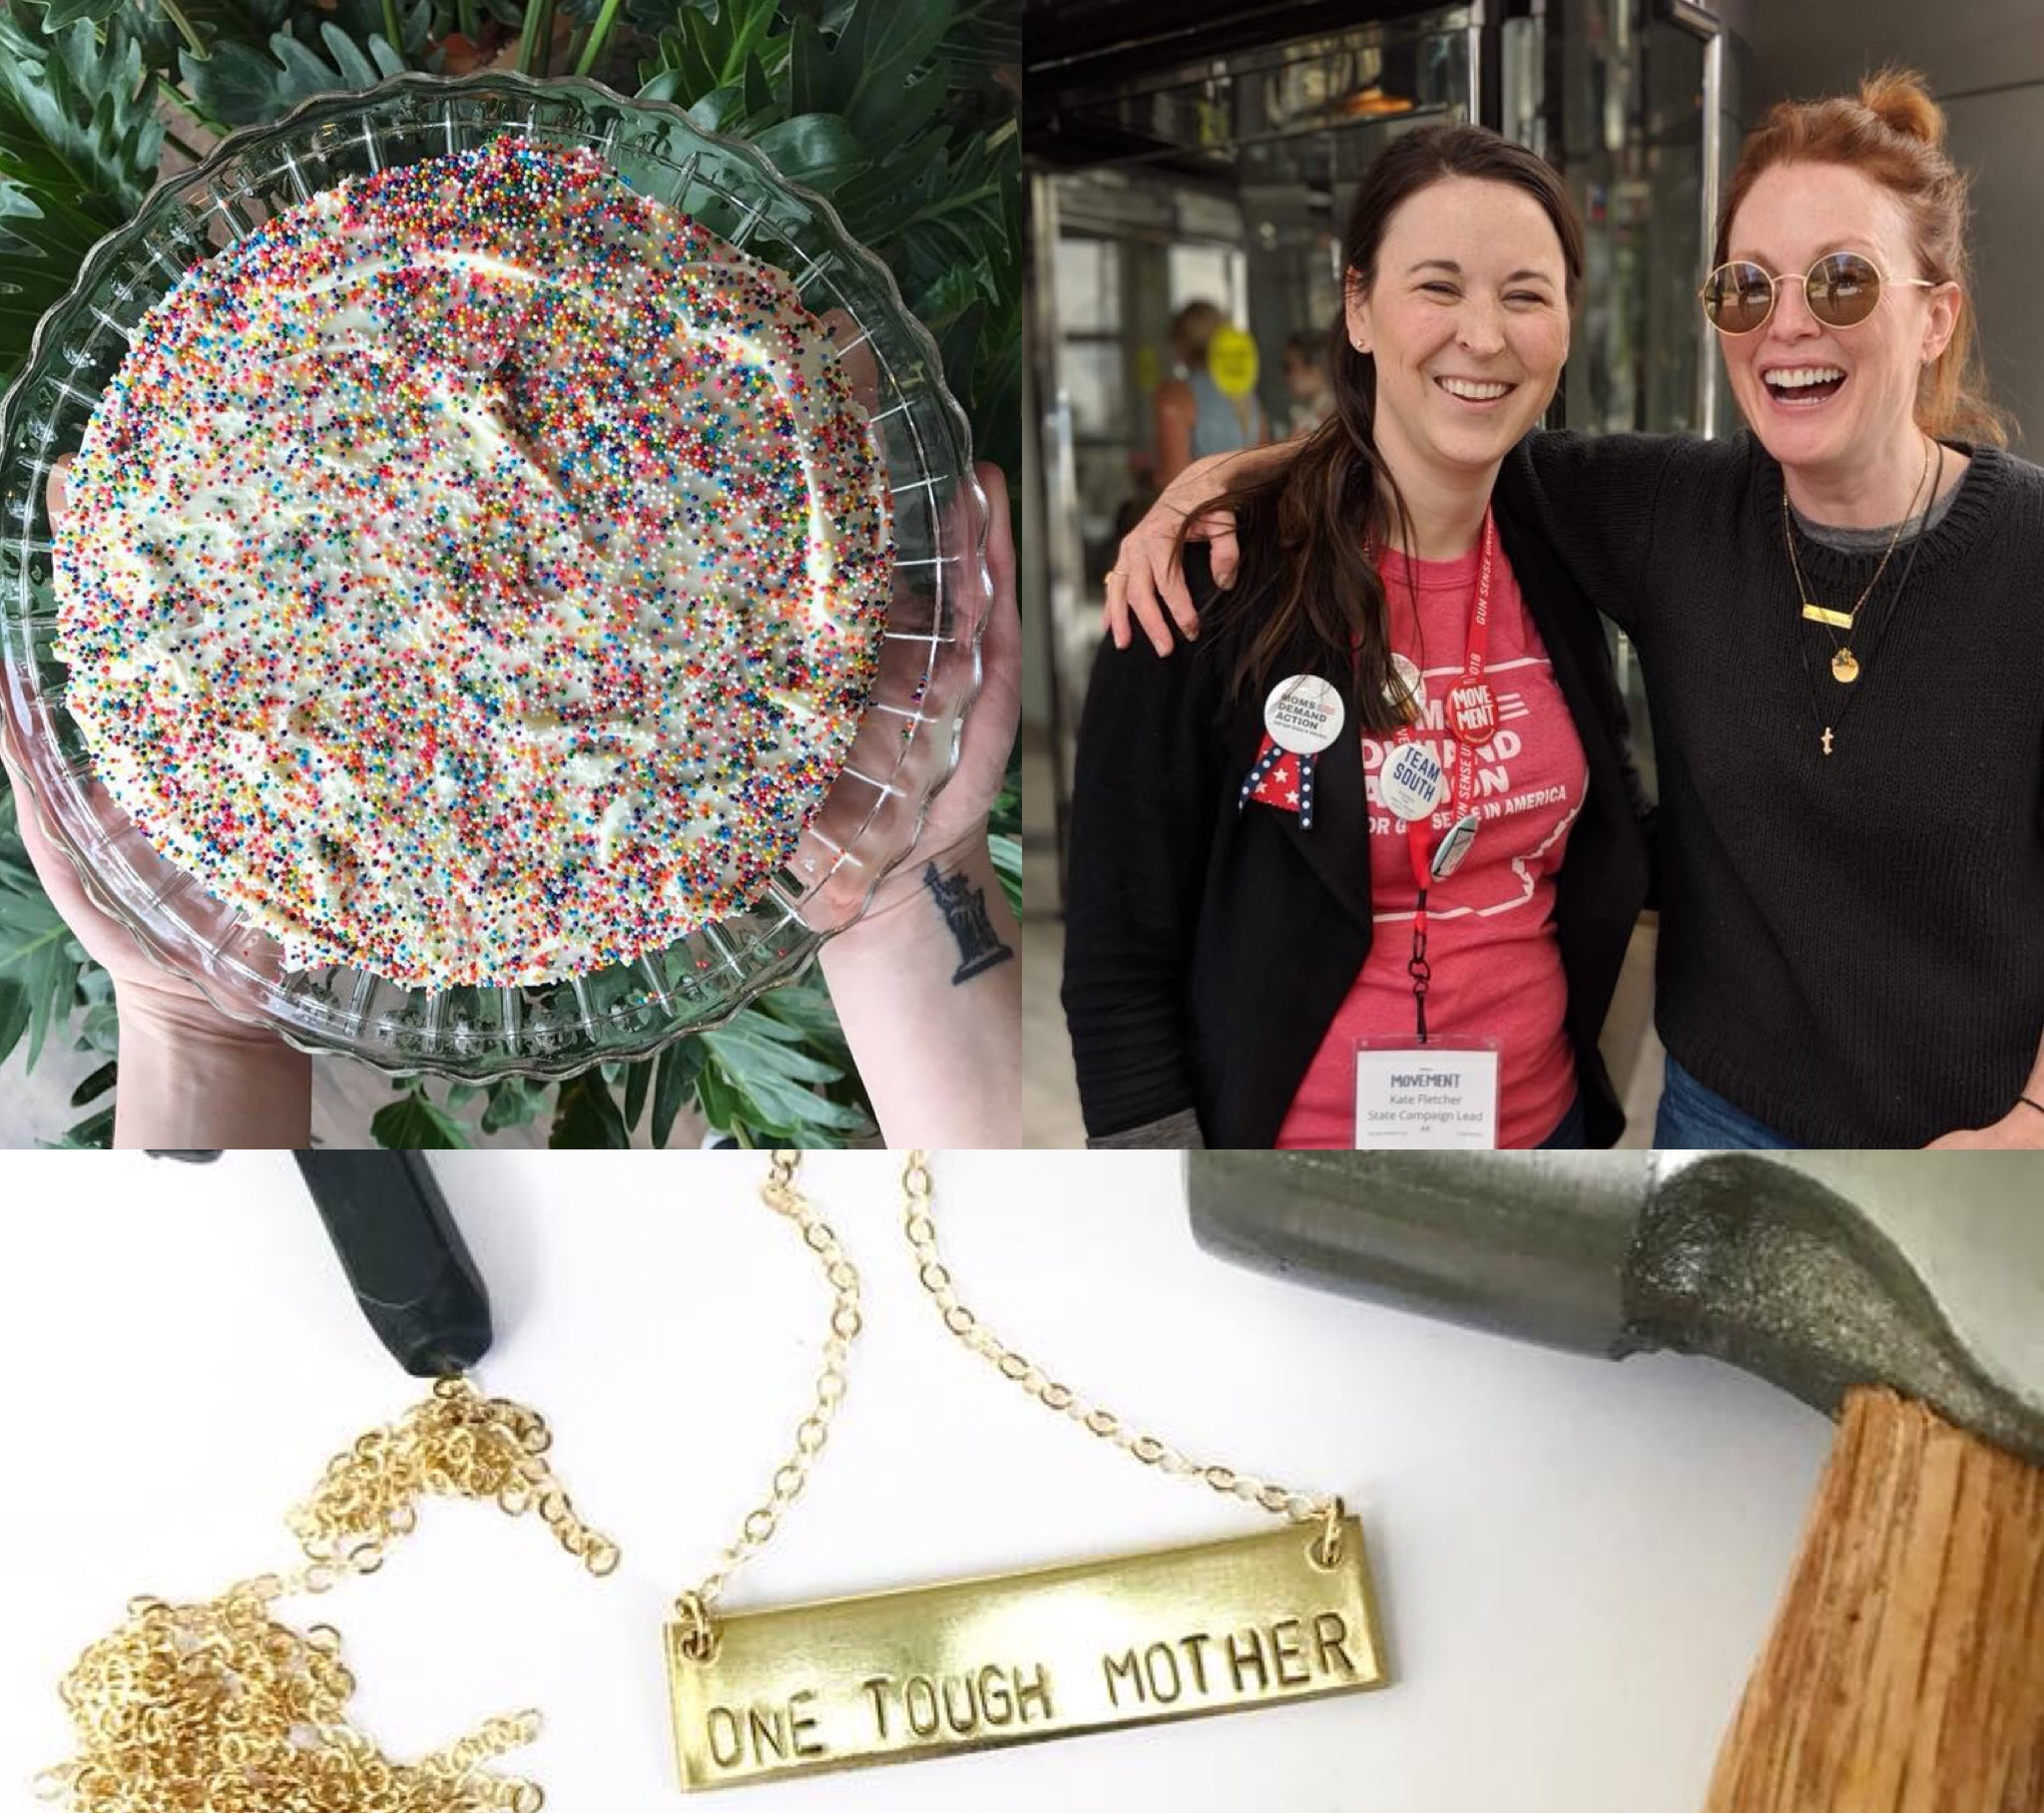 Bang-Up Betty has been stamping handmade jewelry in Arkansas since 2013. Celebrating a 5th anniversary, seeing Julianne Moore wear my jewelry and supporting great charitable causes were among some of the highlights of this Arkansas jewelry maker's 2018.